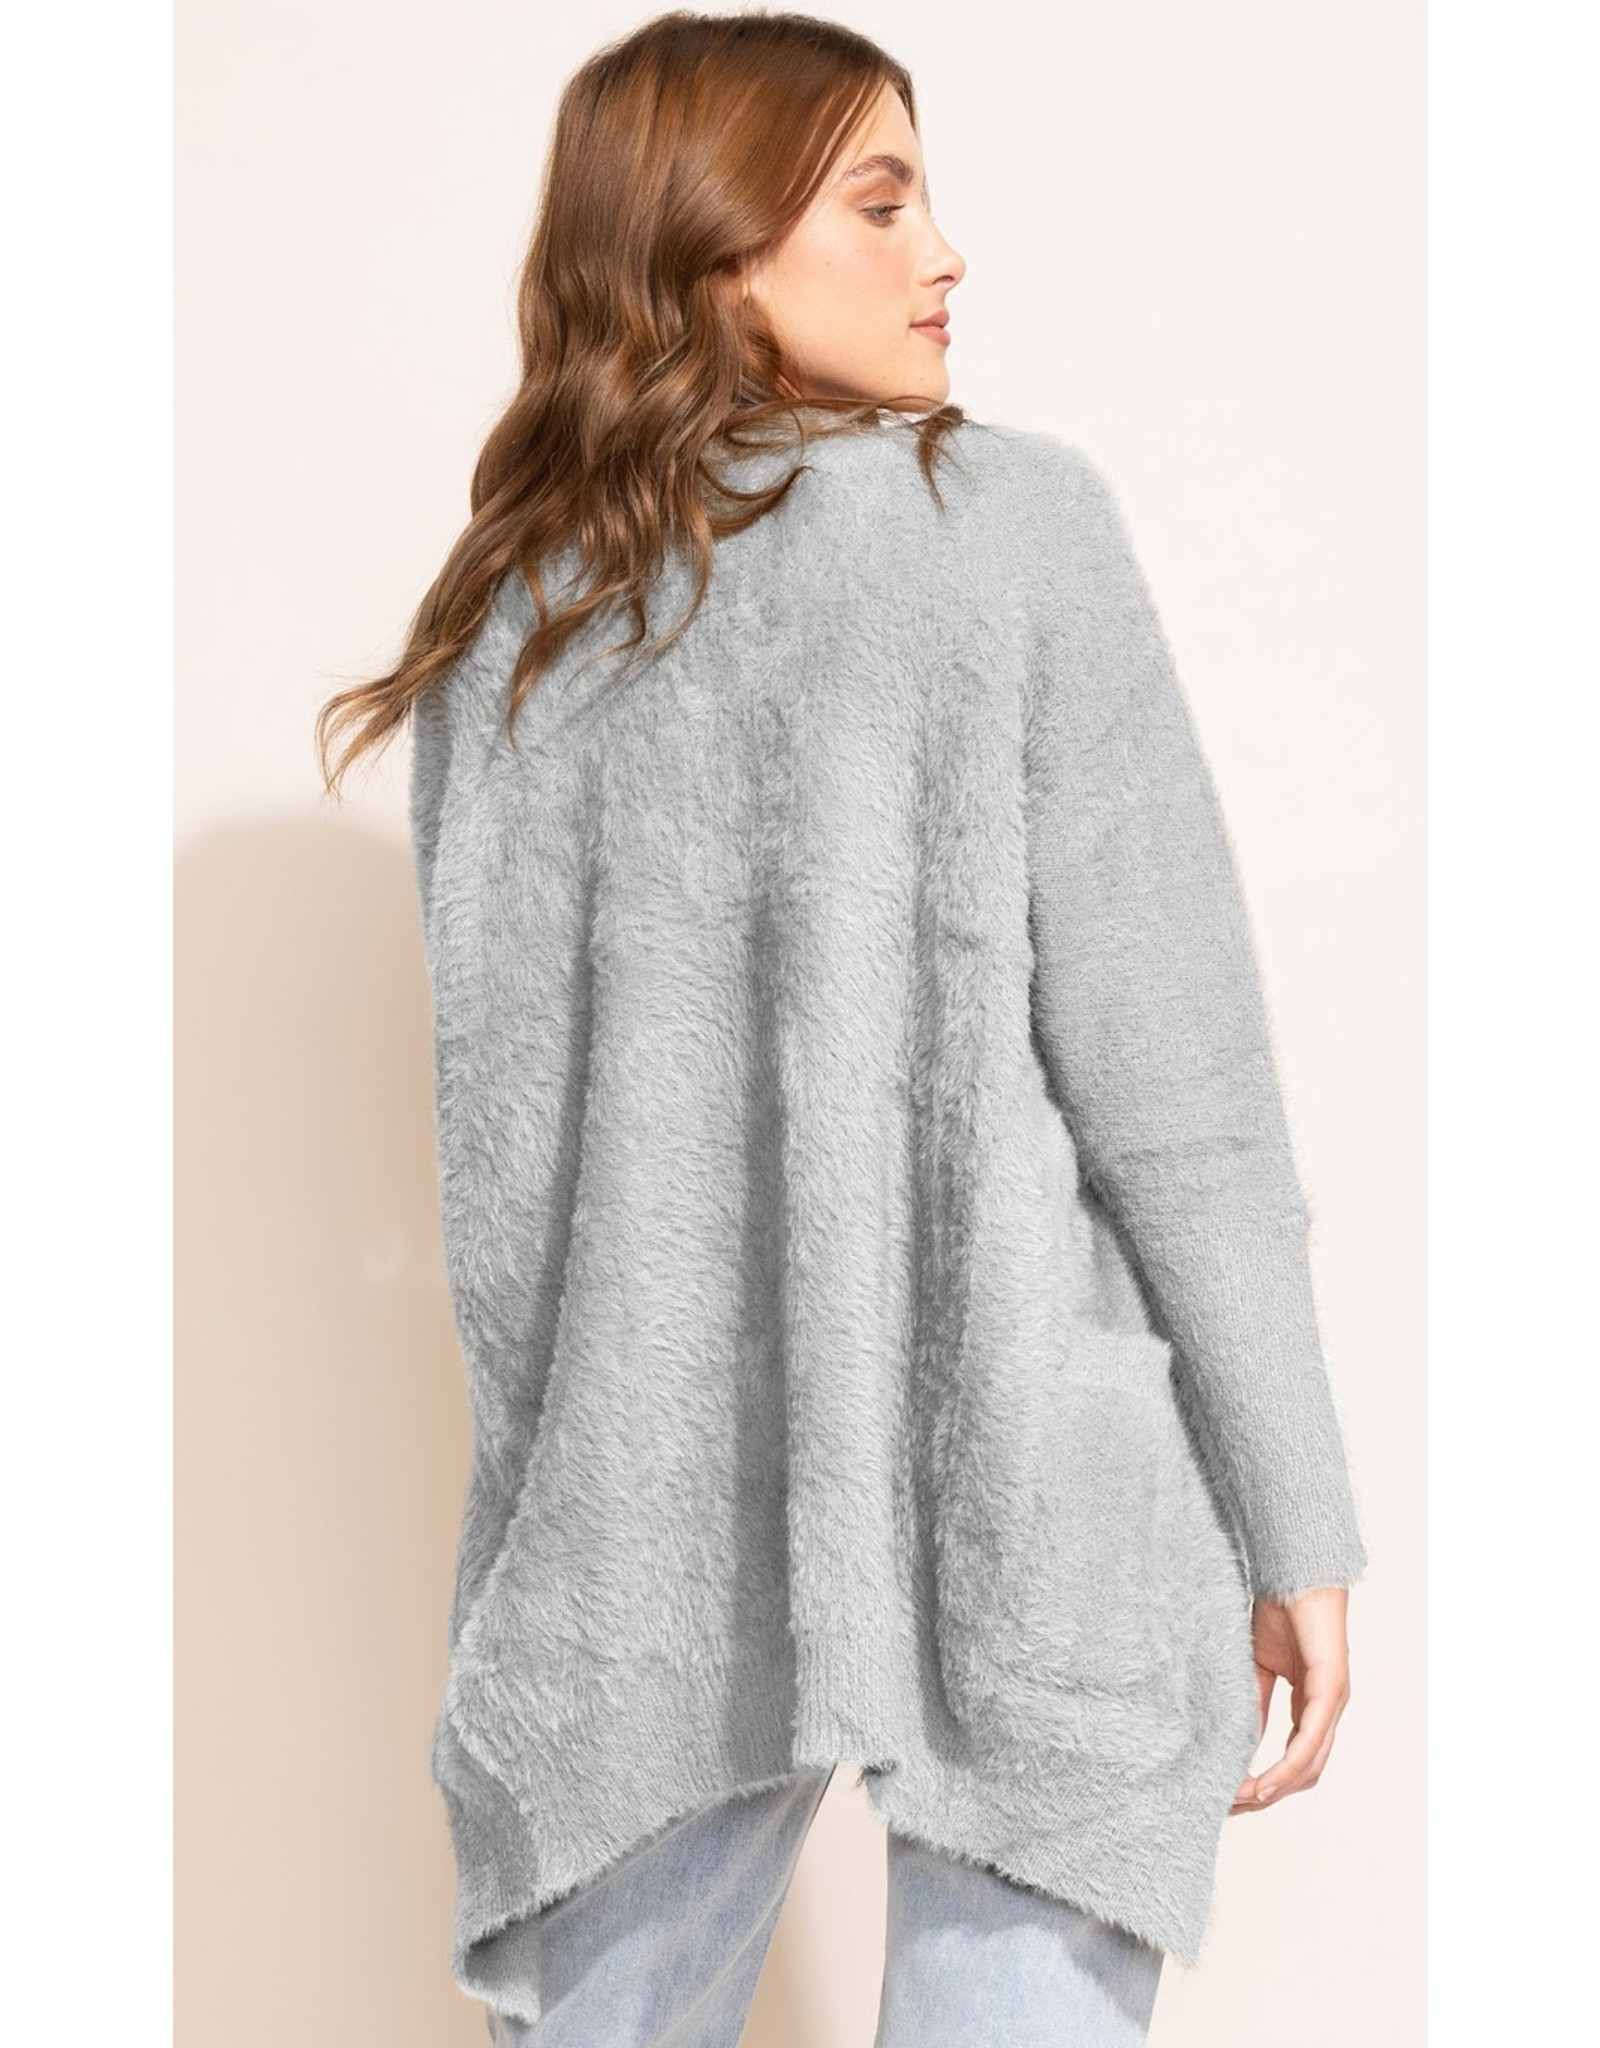 The Arielle Sweater